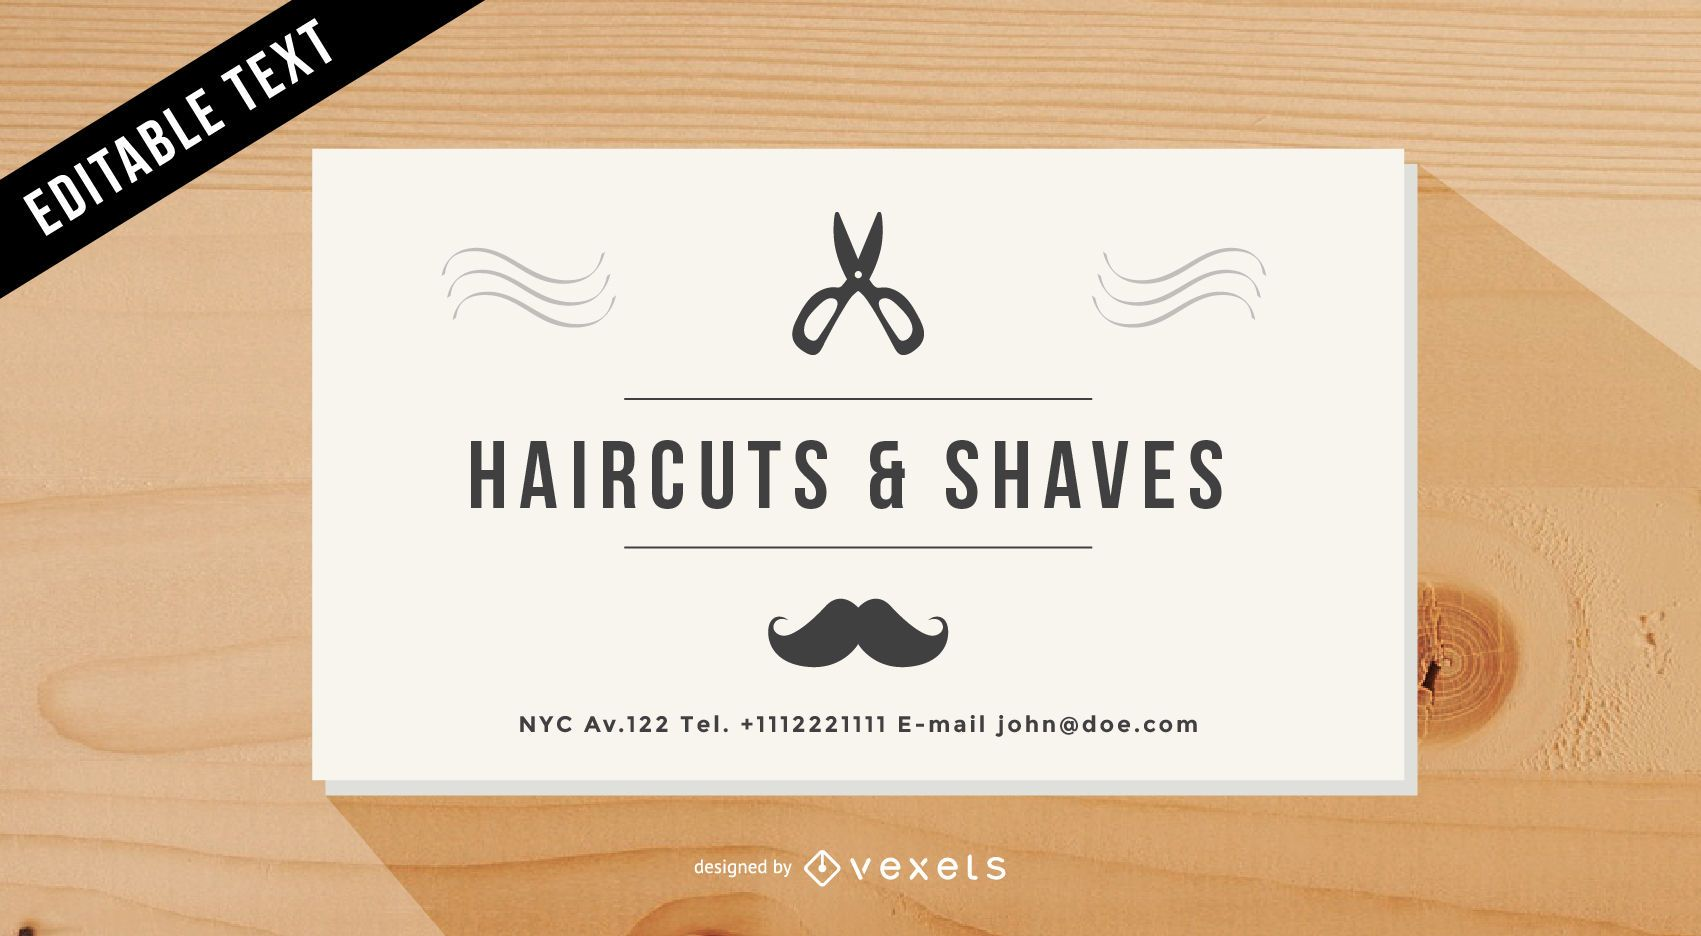 Vintage Barber Shop Business Card - Vector download